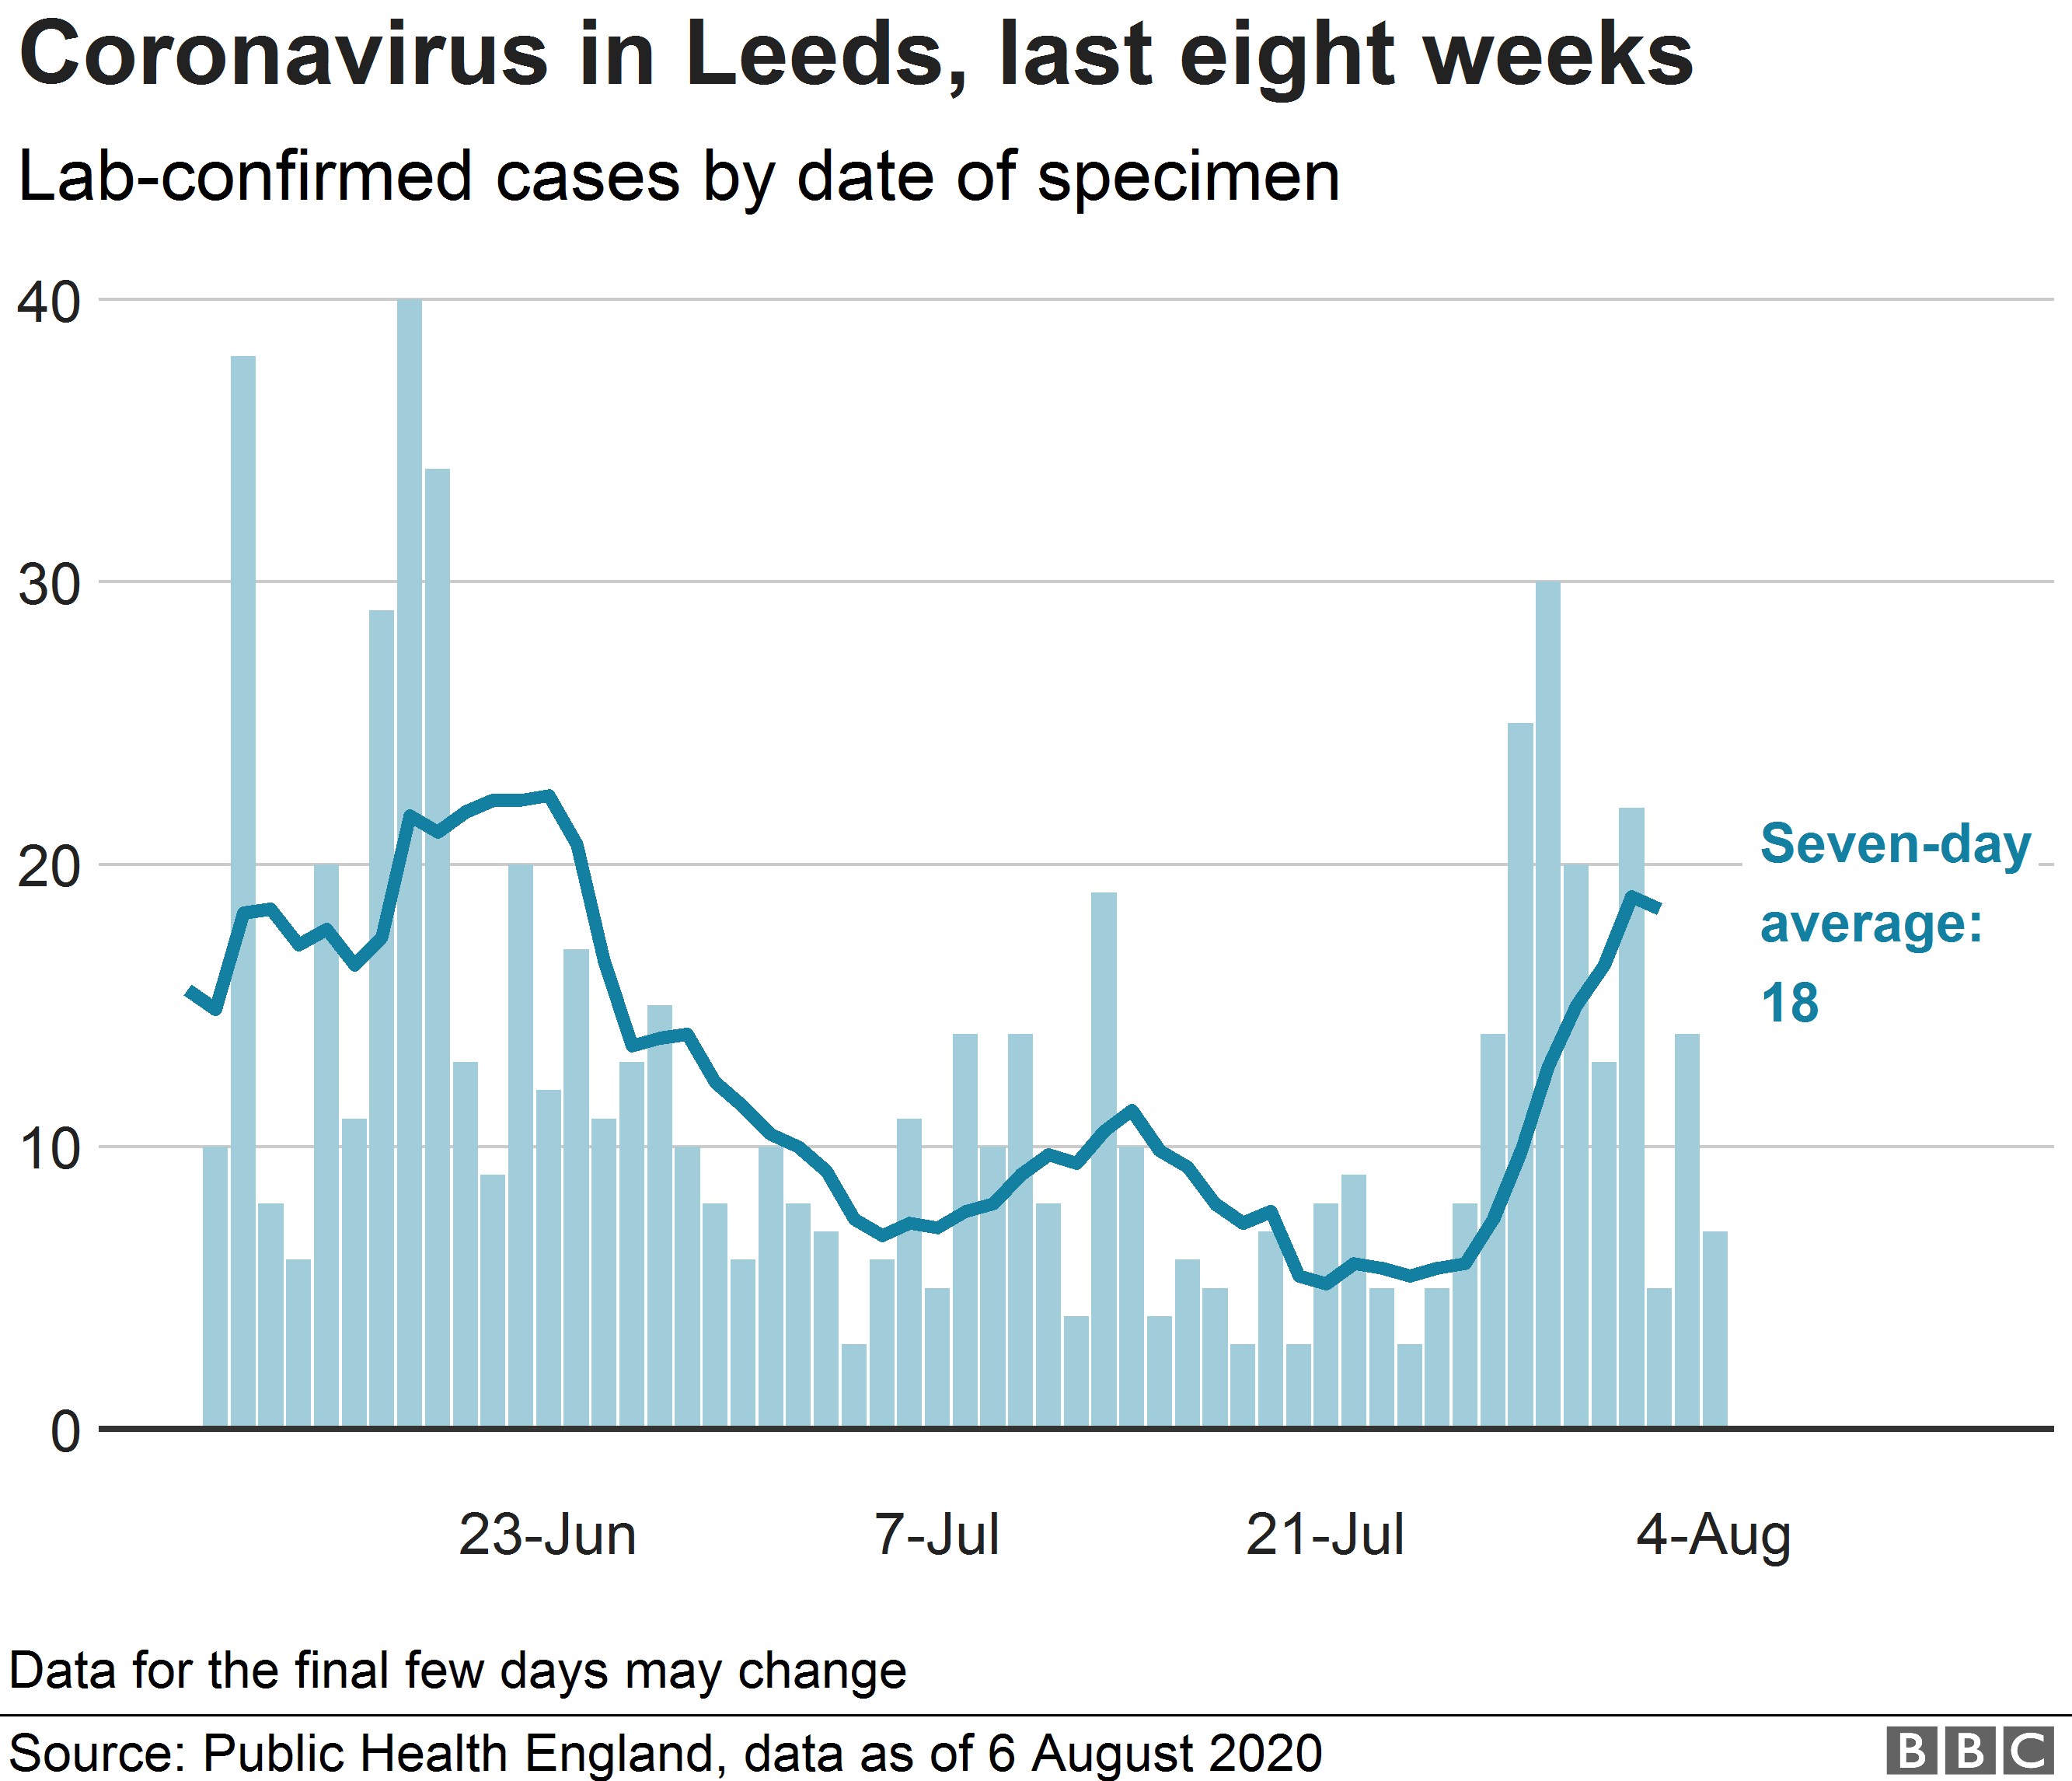 Chart showing coronavirus cases in Leeds